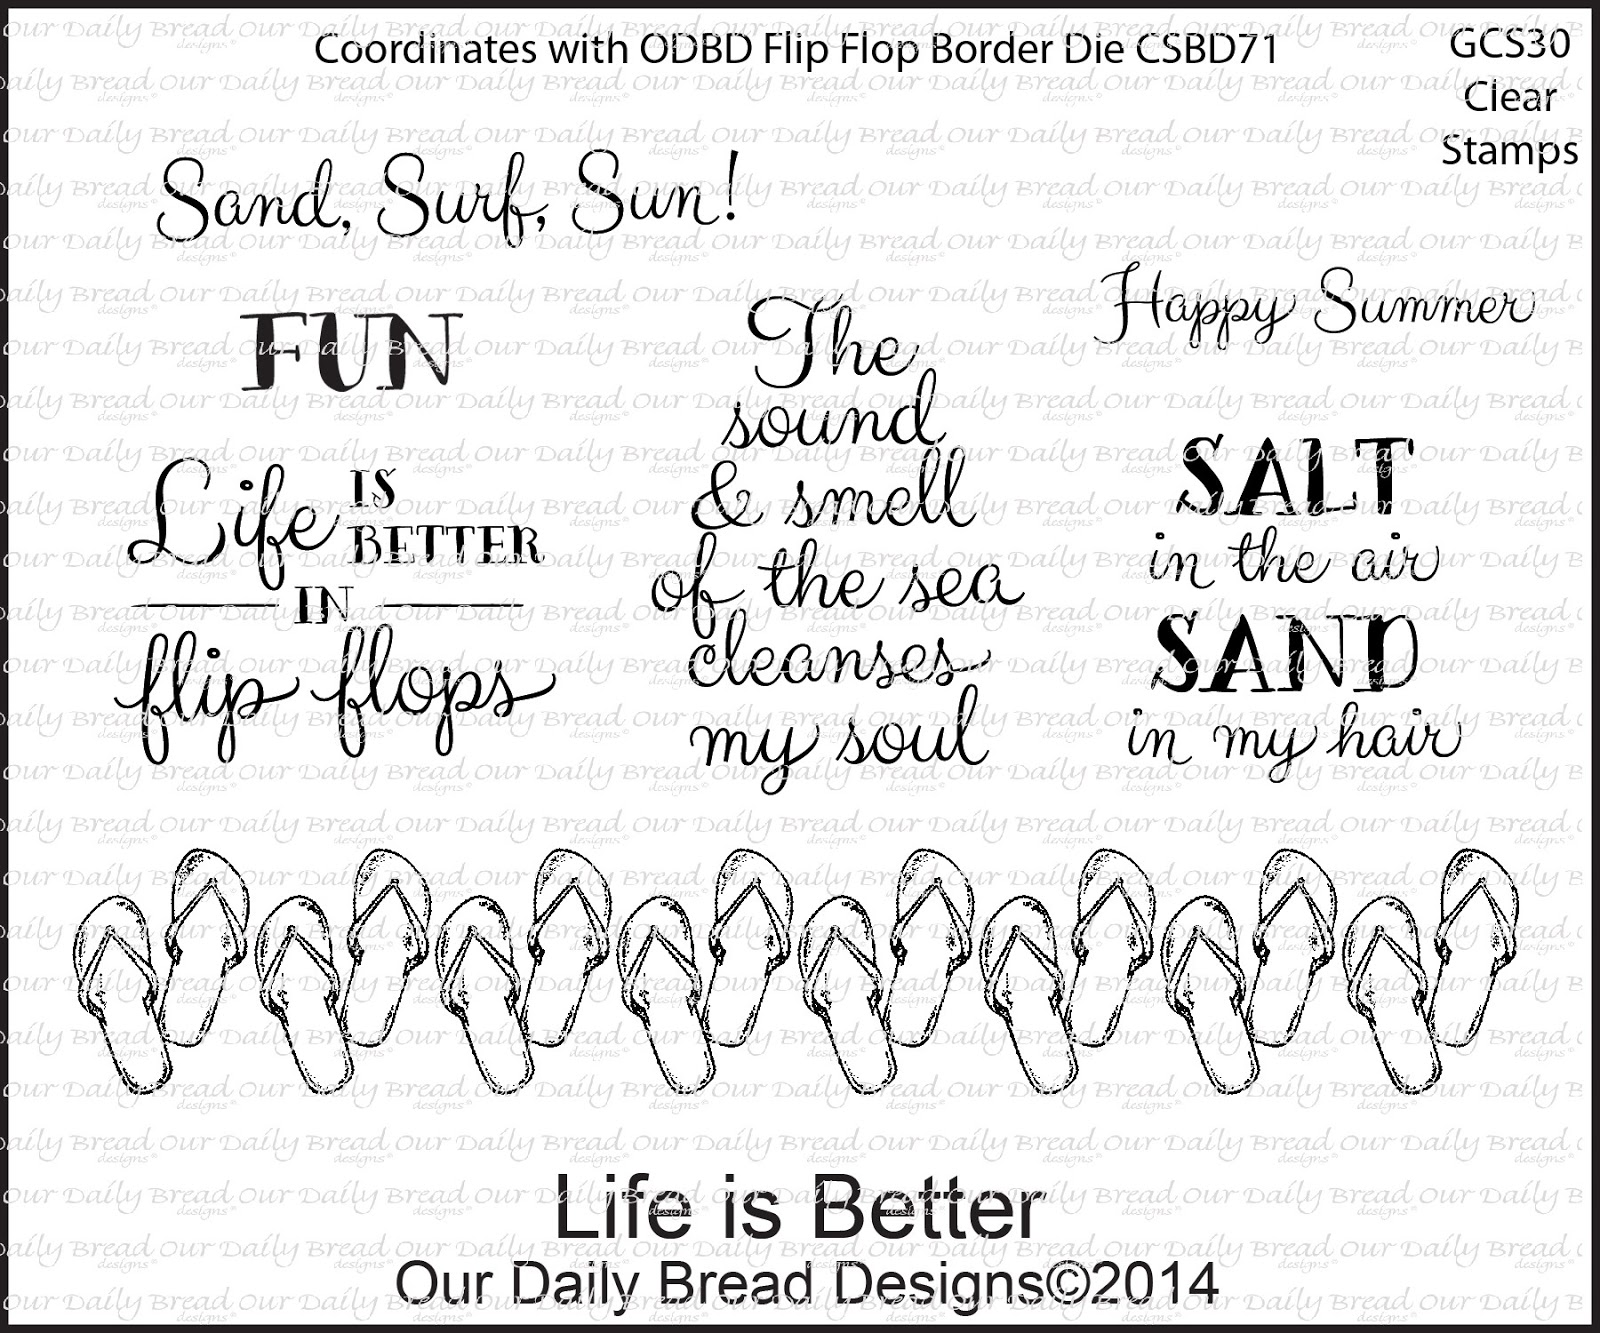 Stamps - Our Daily Bread Designs Life is Better